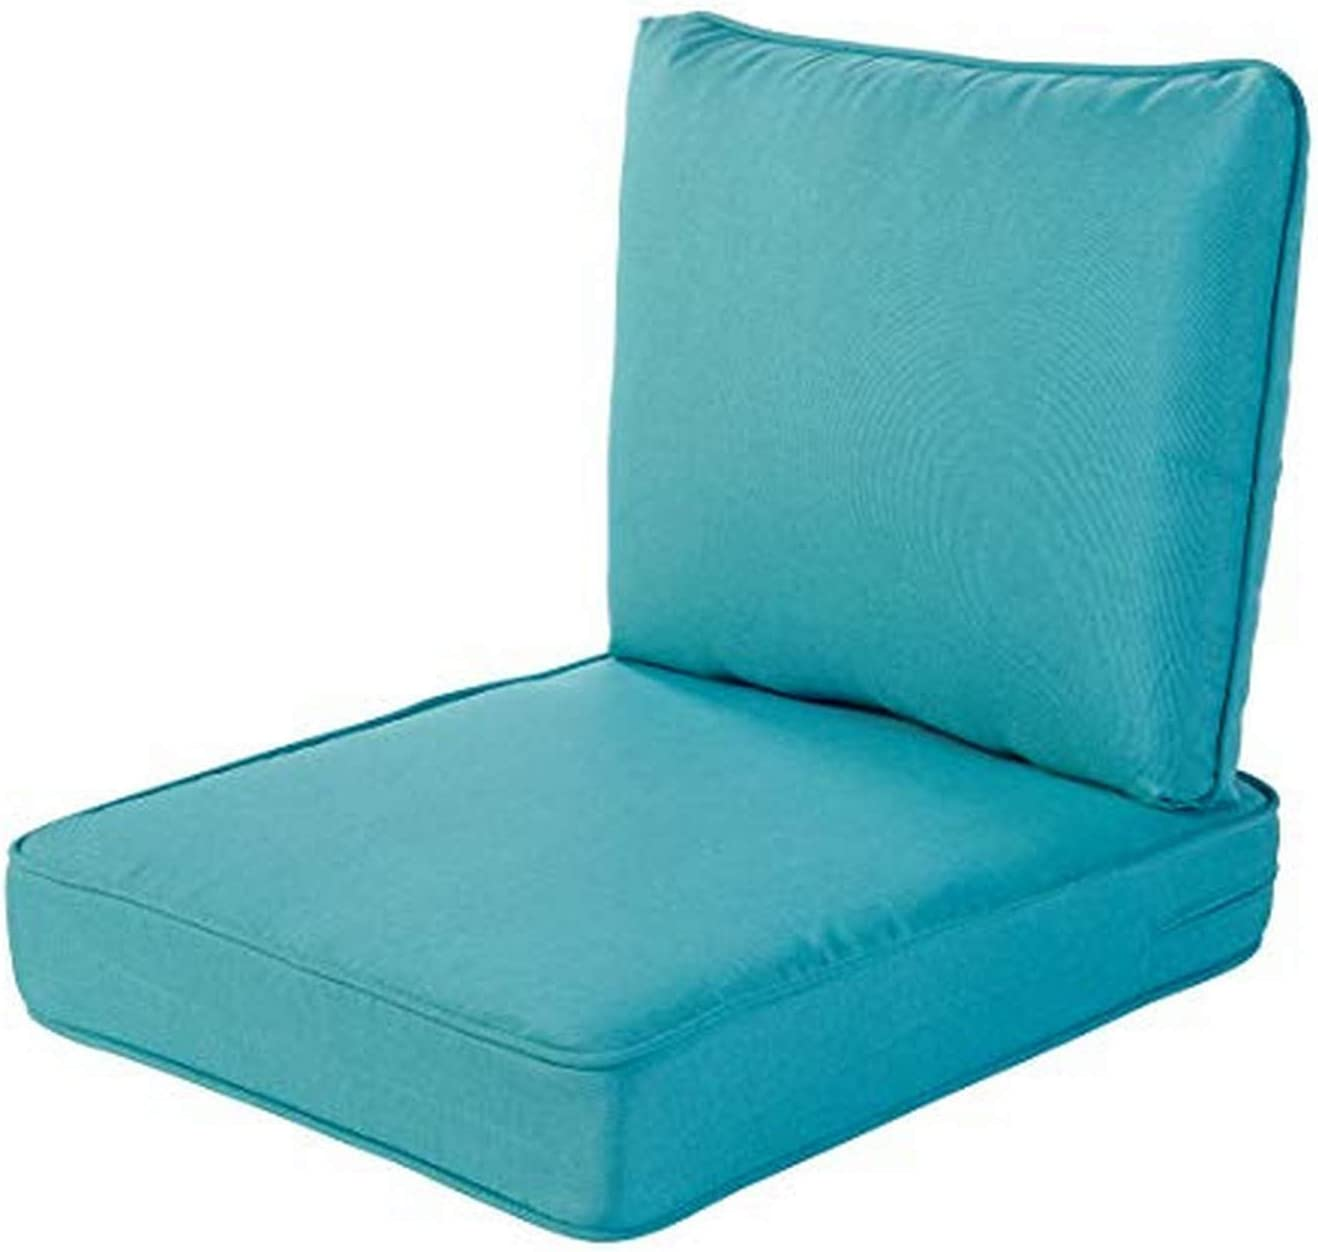 Quality Outdoor Living 29-TQ04SB All-Weather Deep Seating Chair Cushion, 23 x 26 (Pack of 2), Turquoise